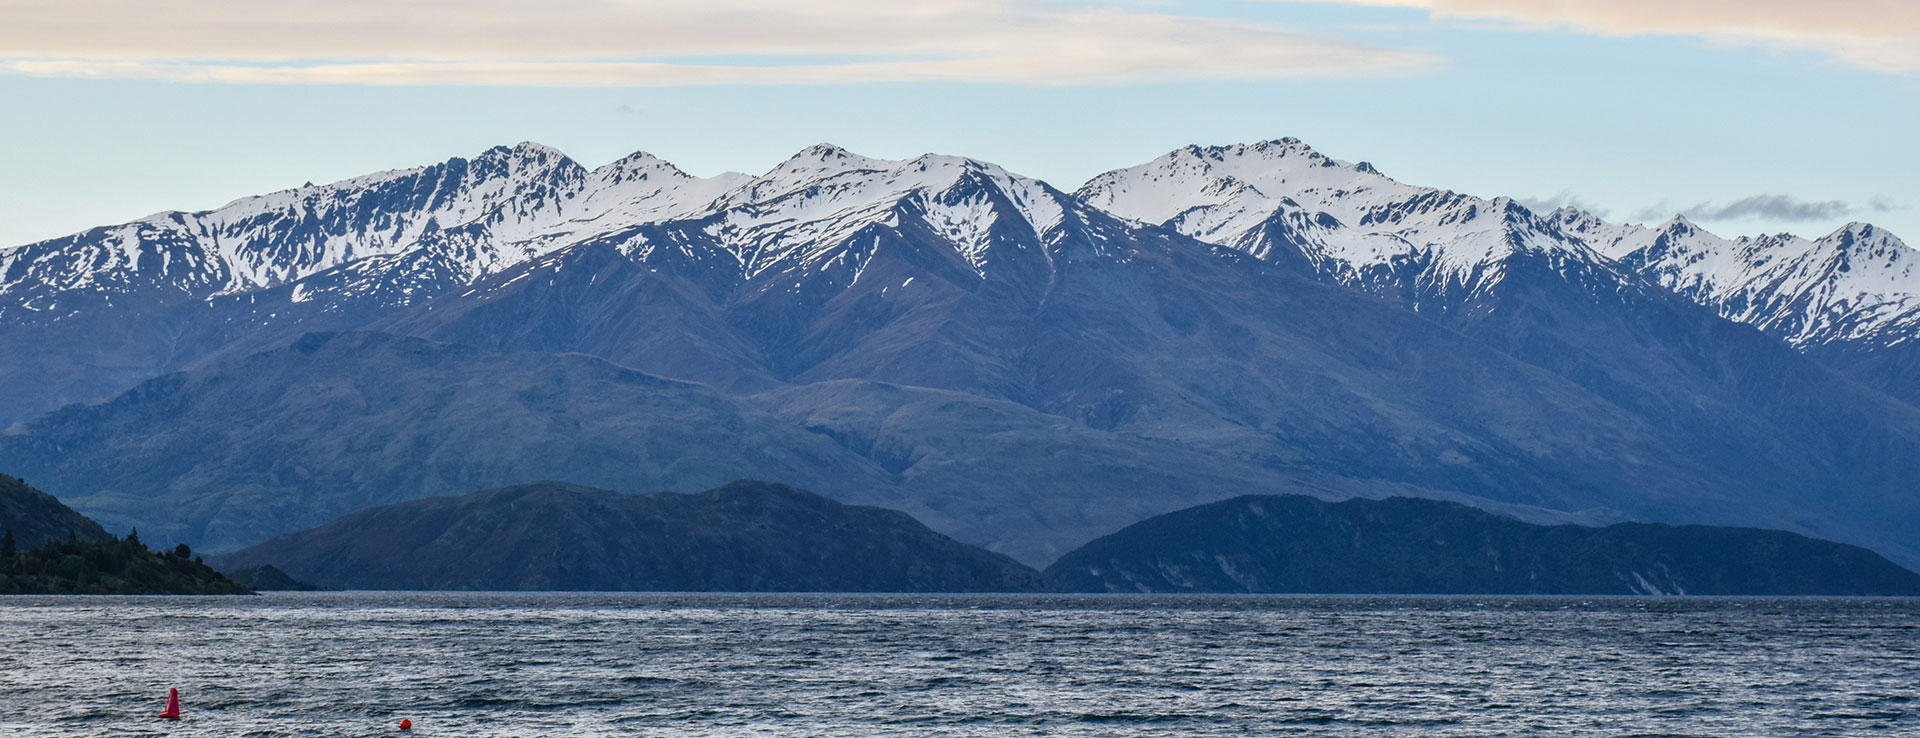 How to spend 48 hours in Wanaka, New Zealand